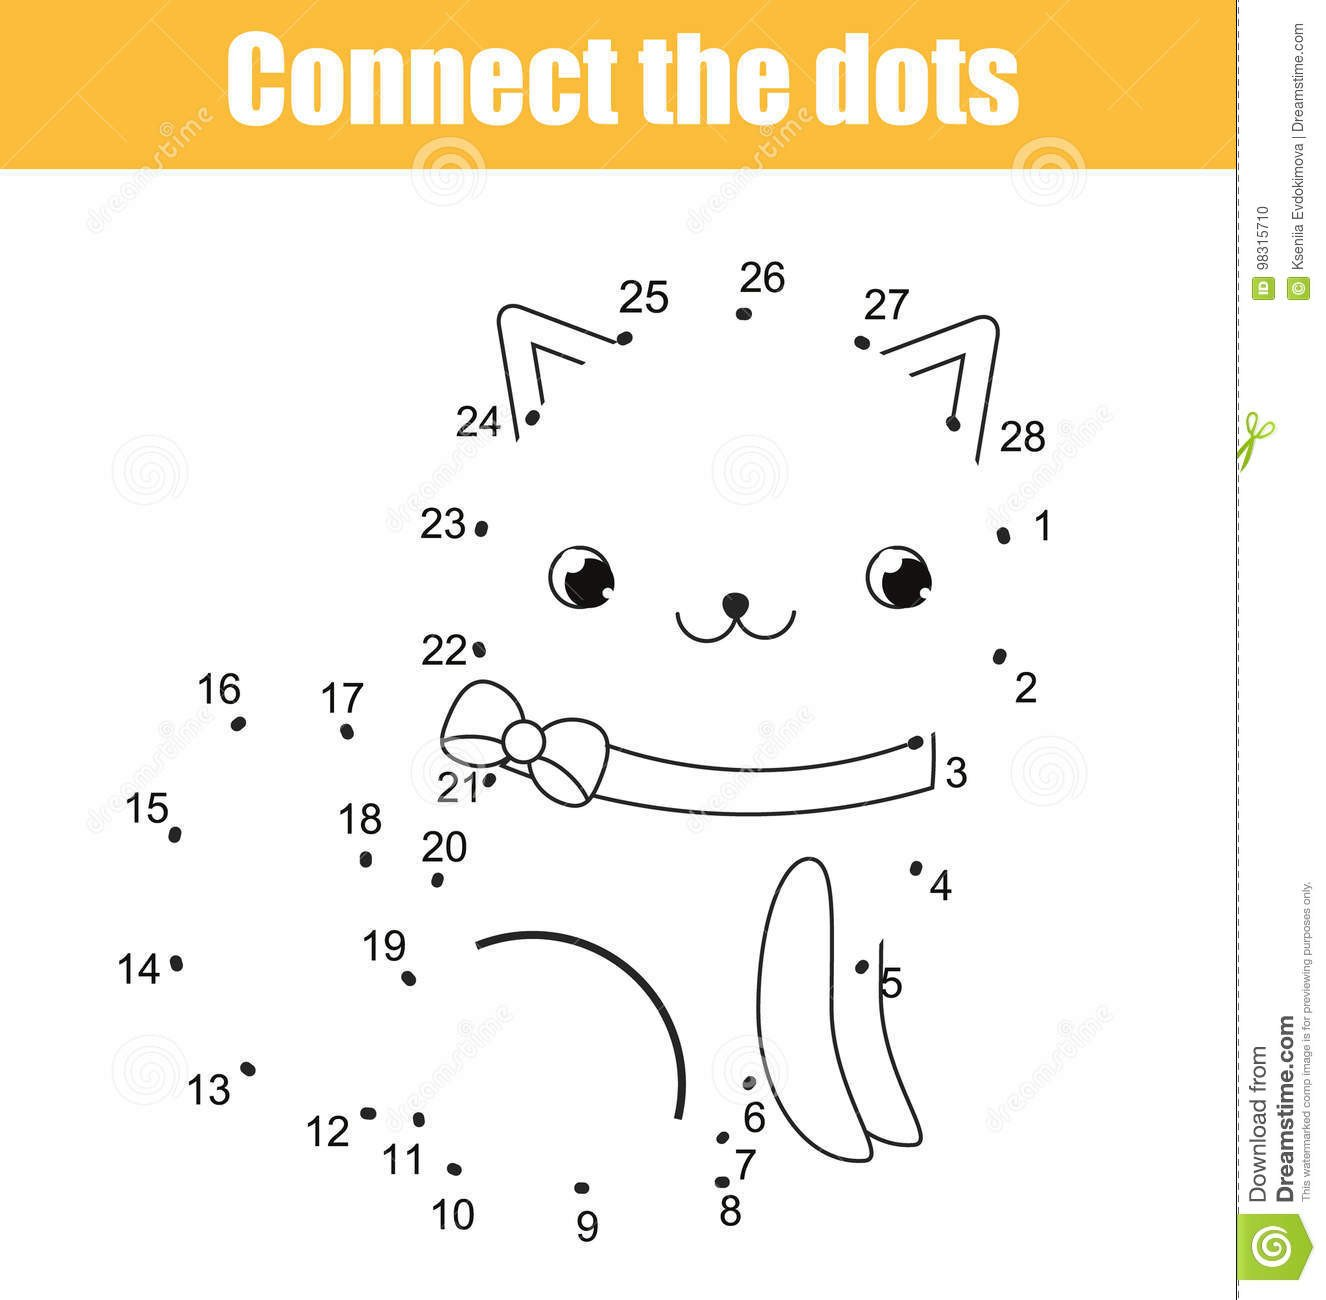 Connect the Dots Math Worksheets Connect the Dots by Numbers Children Educational Game